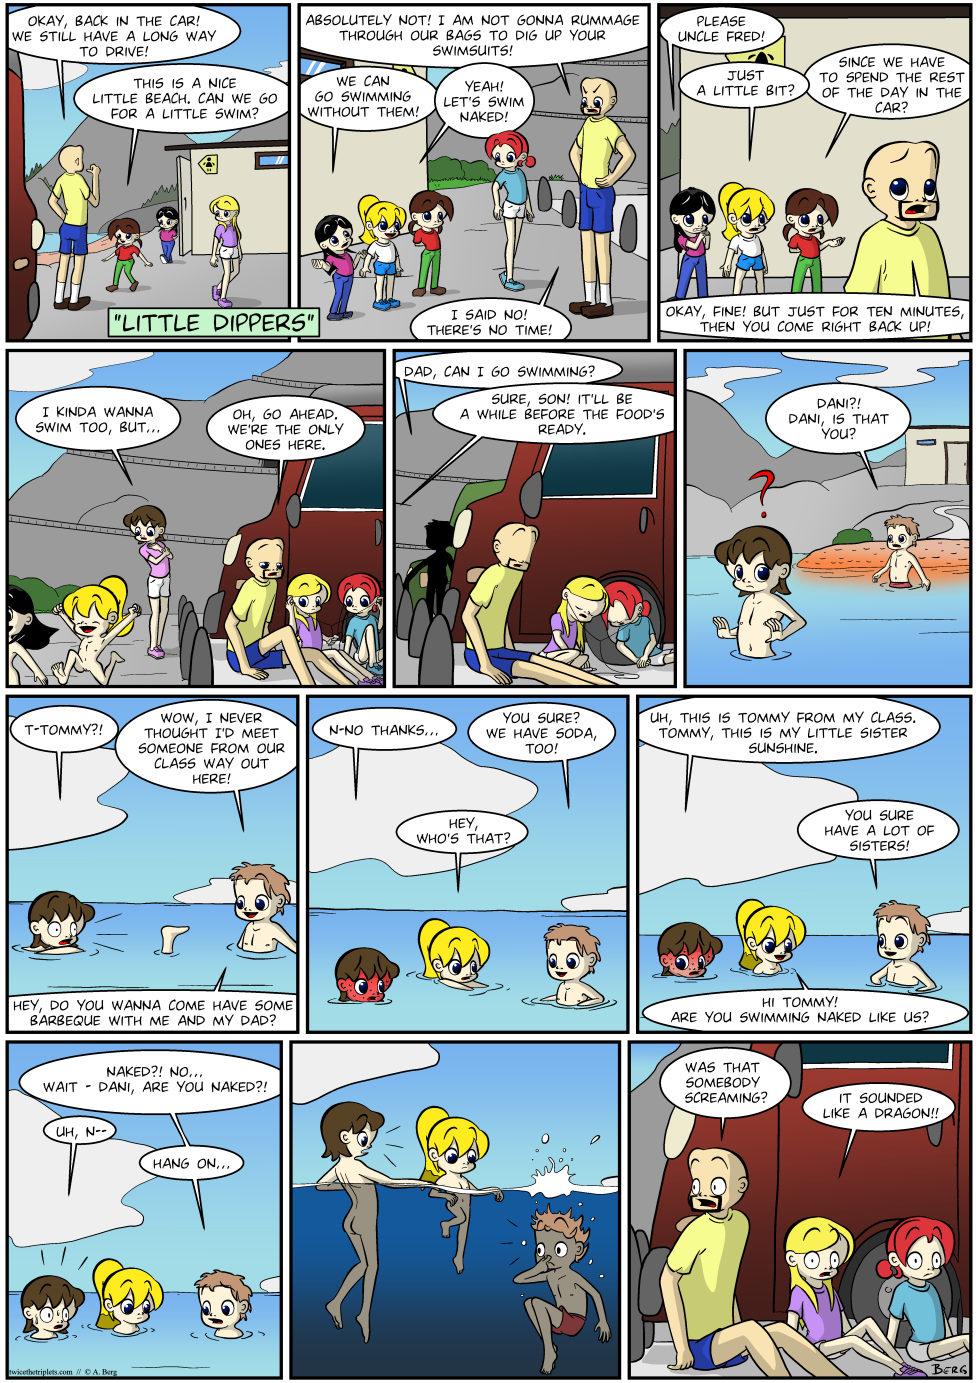 It's been a while since we had a Dani strip. Uh, I mean, a comic strip in which Dani is the main character. Just to be clear.